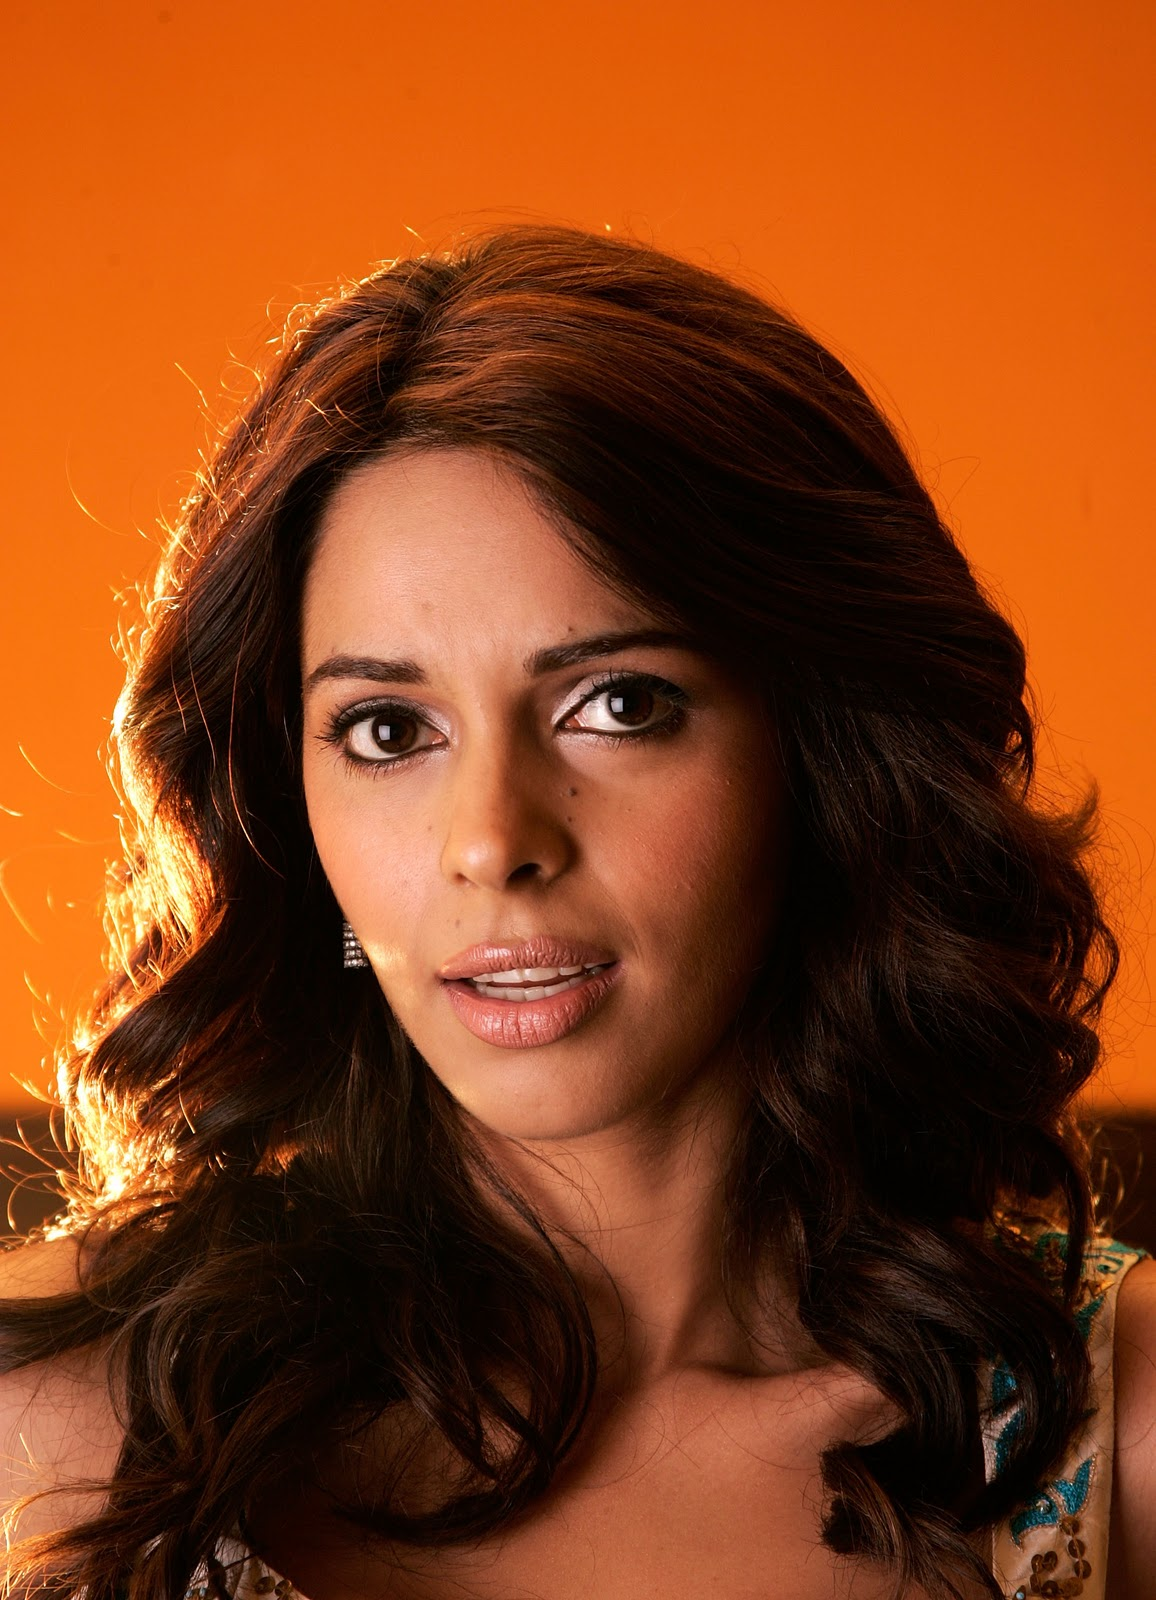 Agree with Mallika sherawat face for